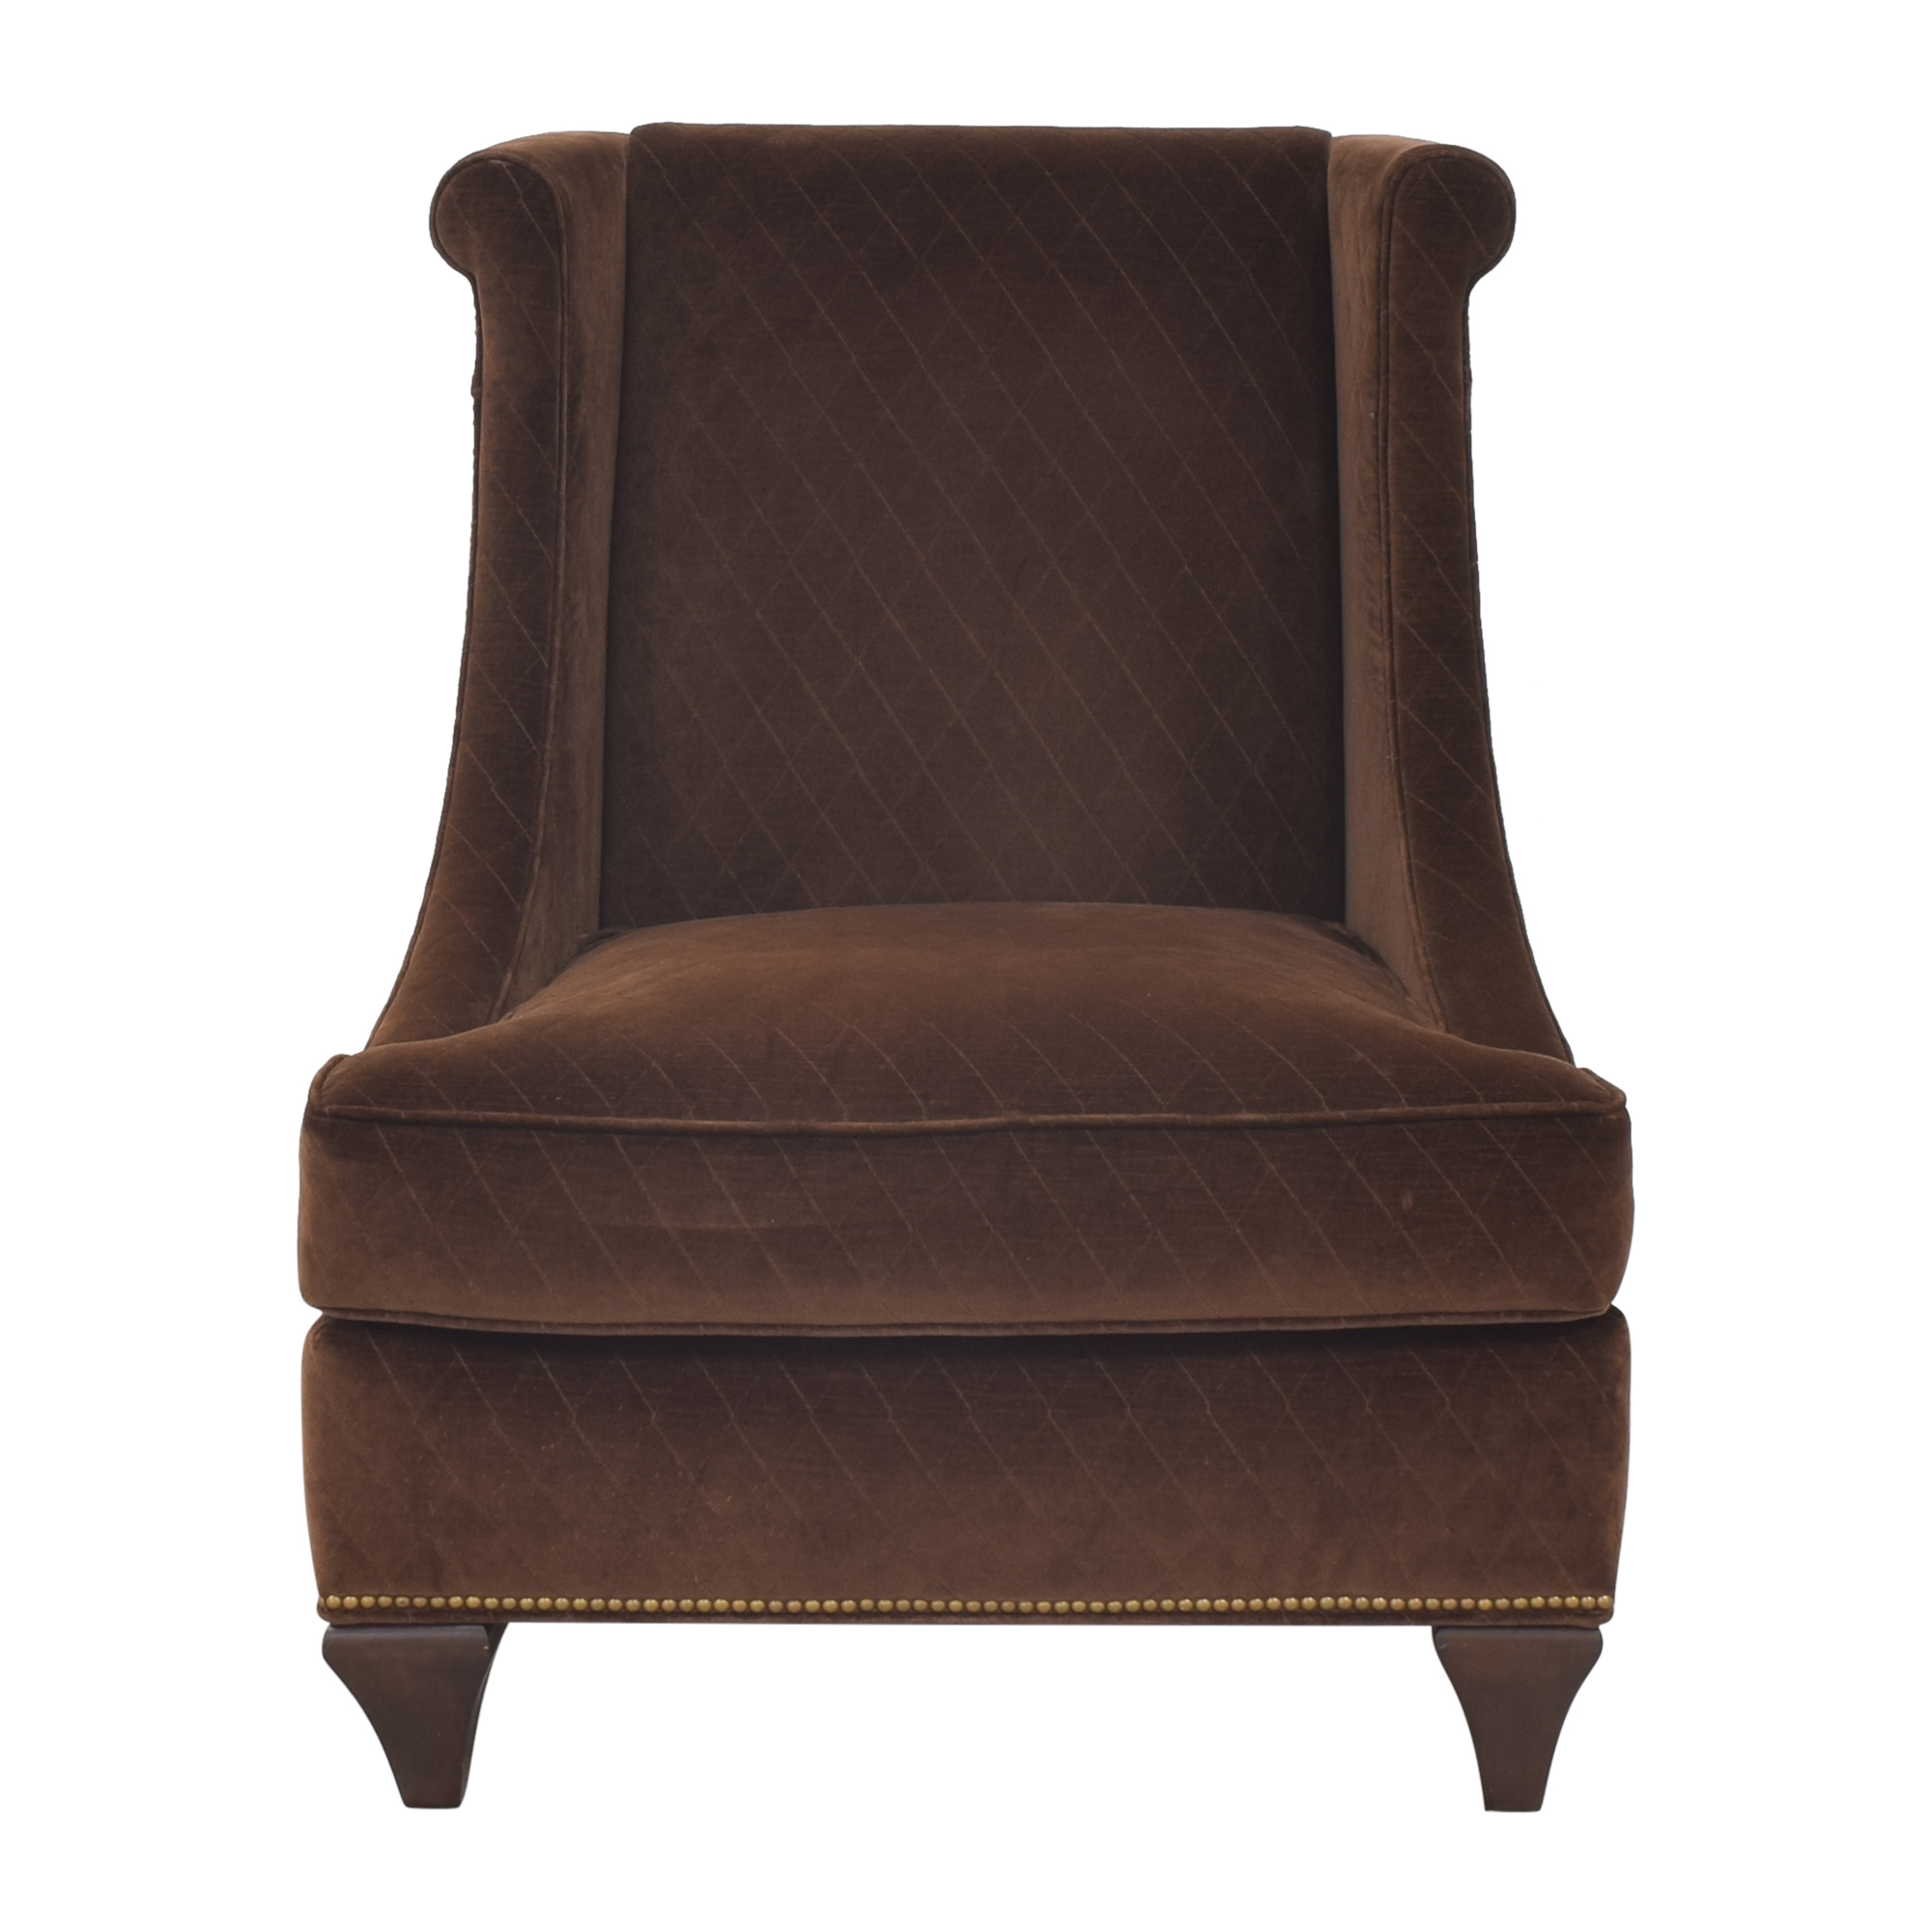 shop Stanford Furniture Blane Chair Stanford Furniture